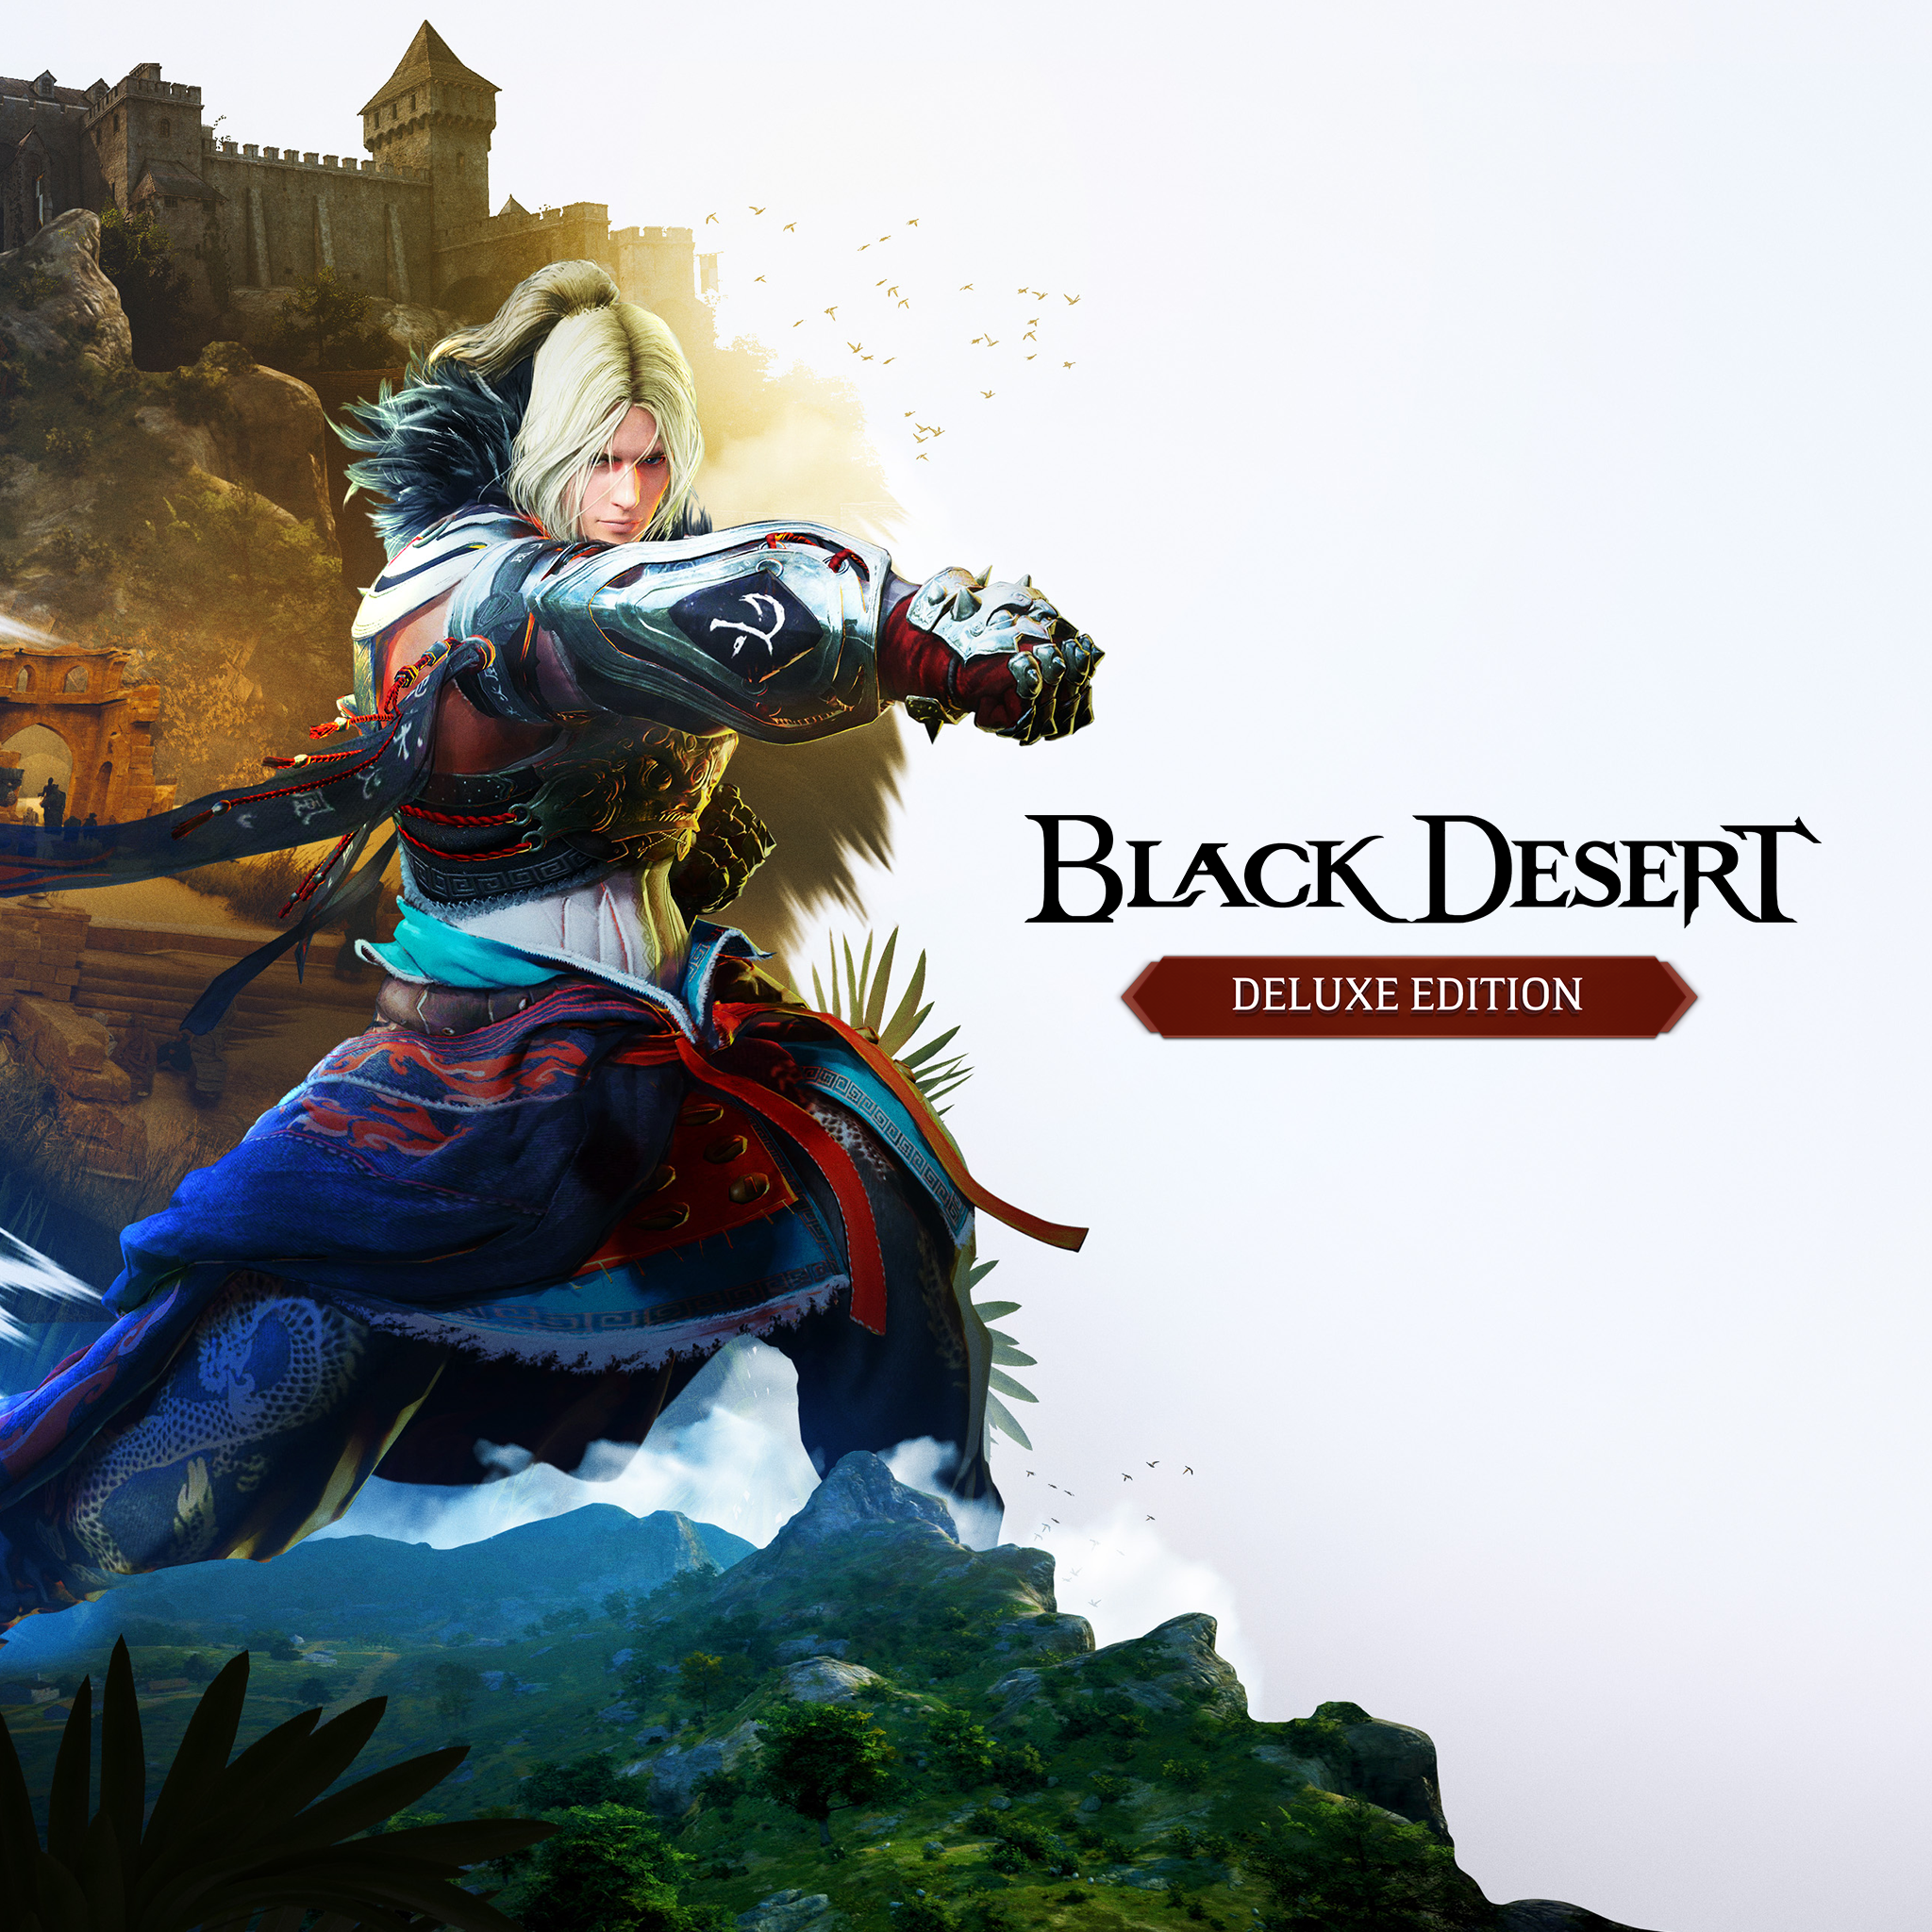 Thumbnail of Black Desert : Deluxe Edition on PS4